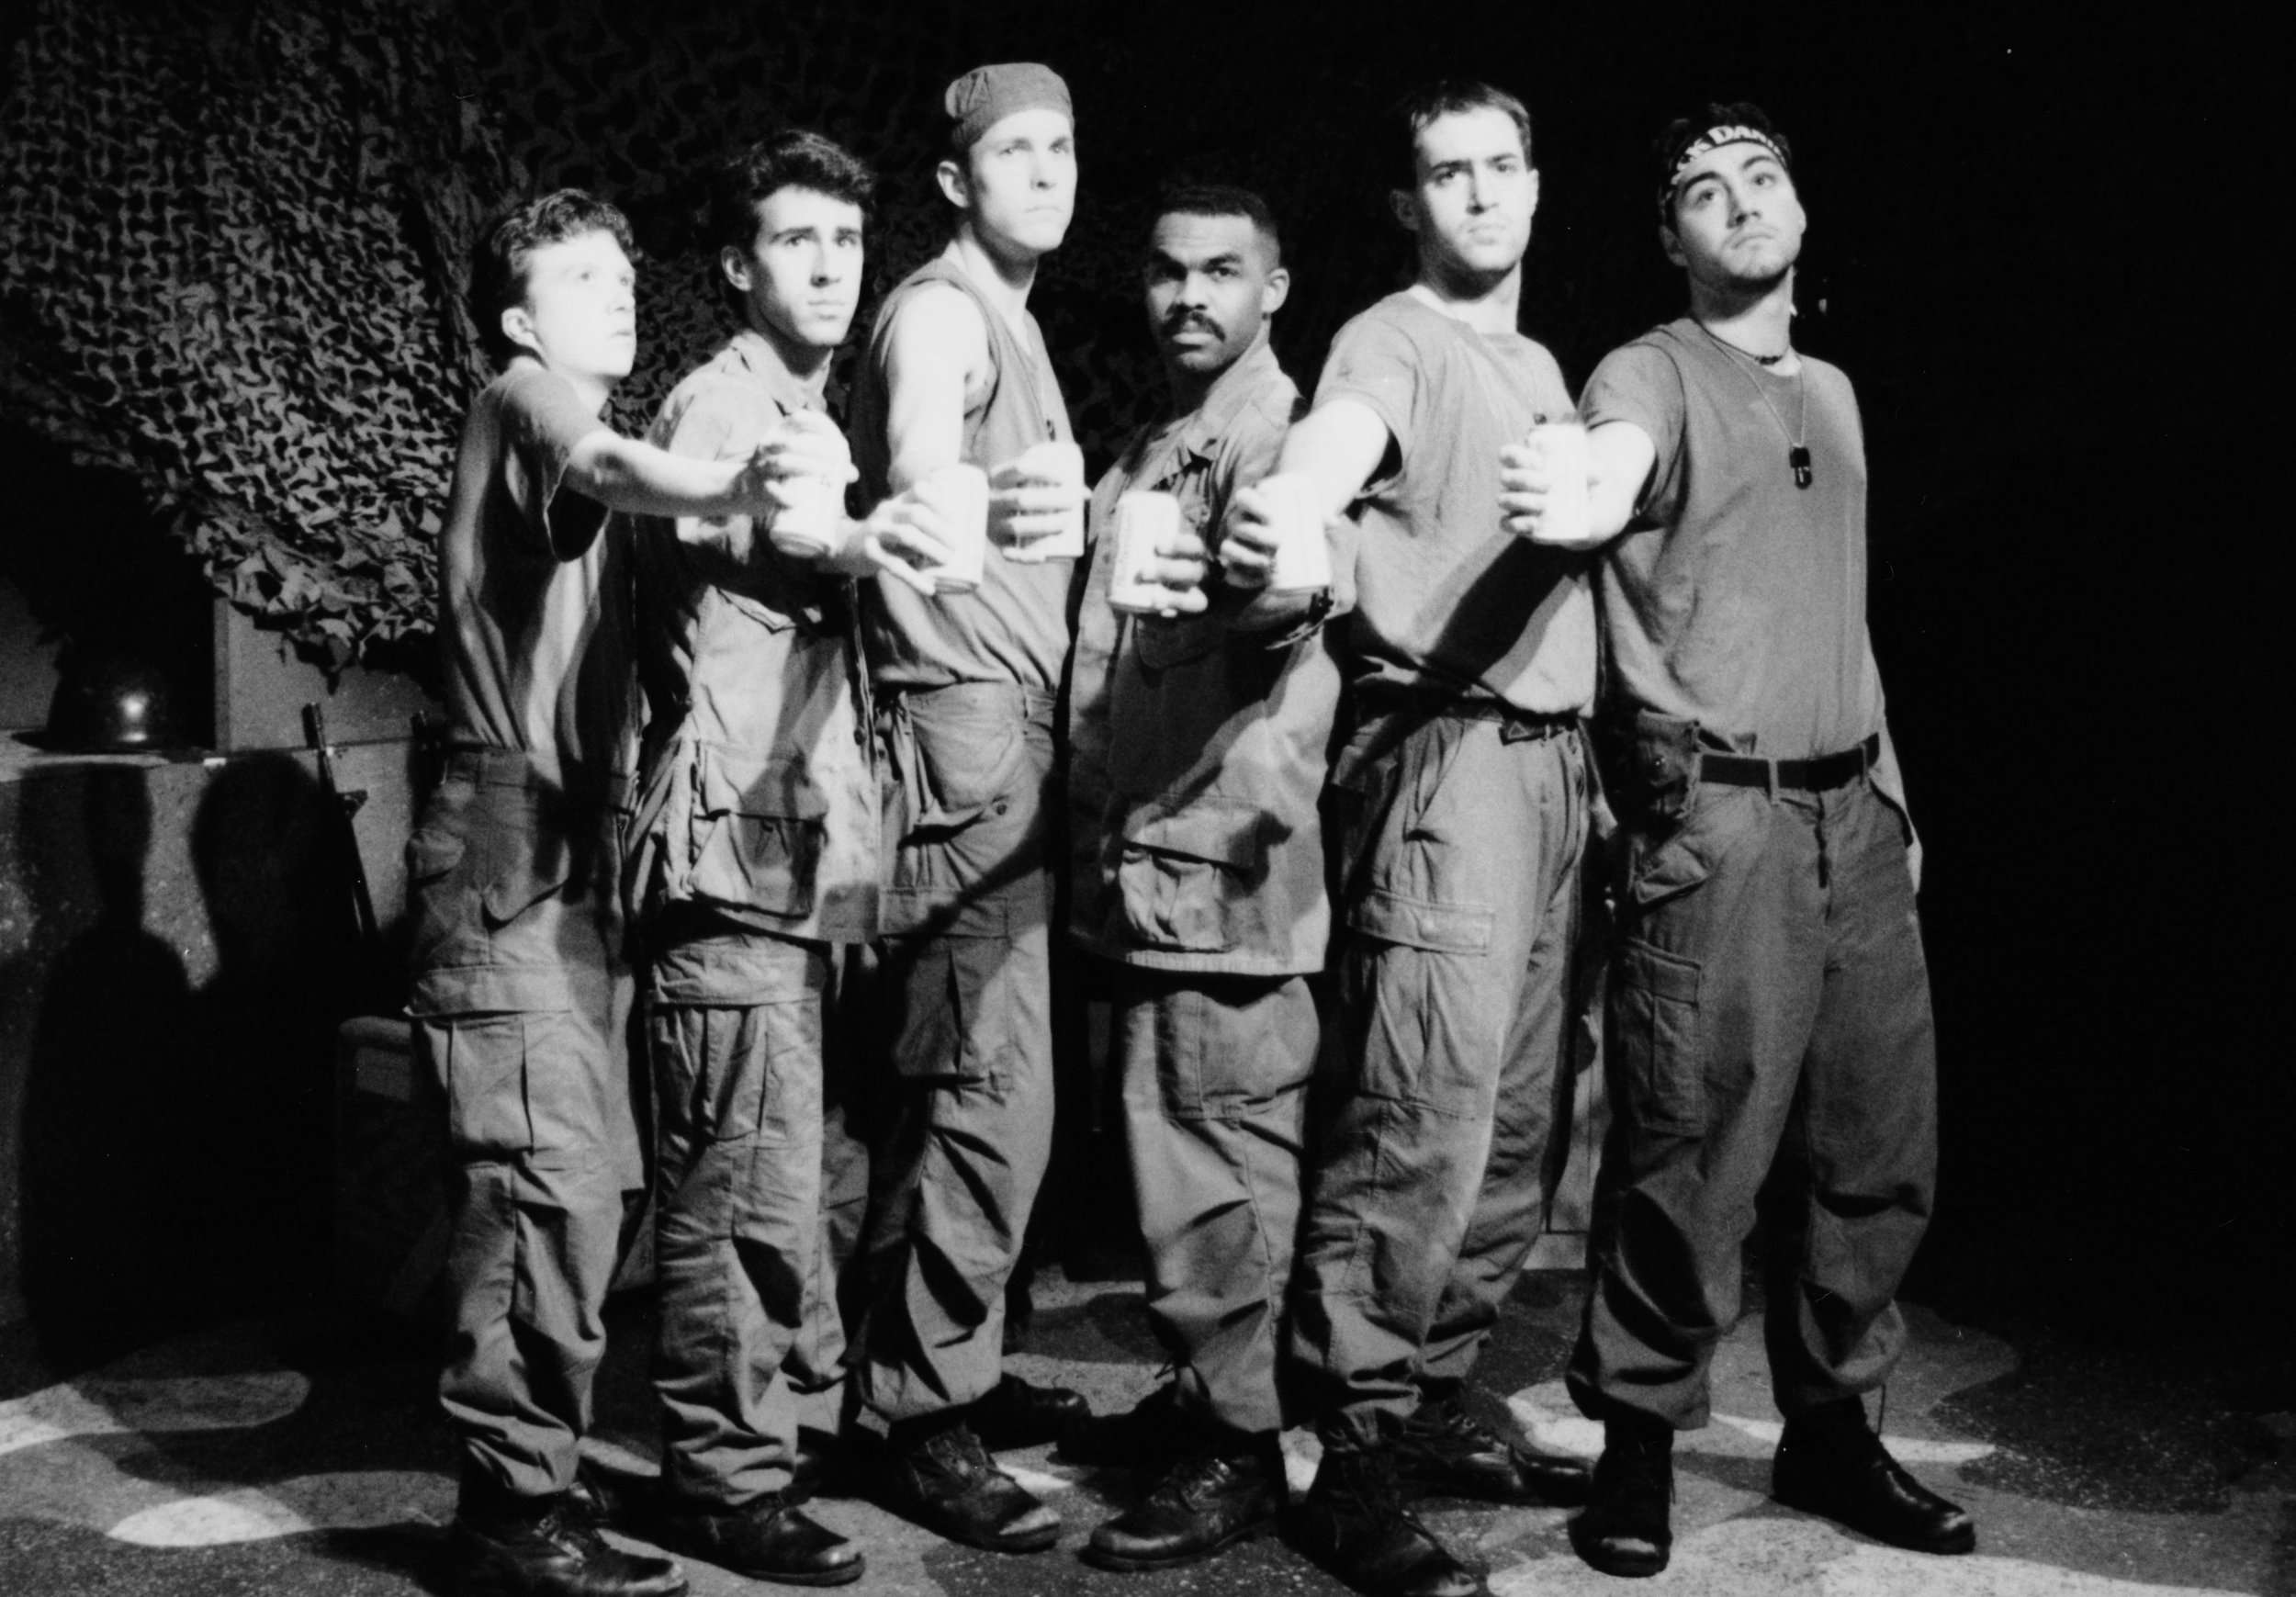 Scott Freeburg (Baby San), Craig Bilsky (Professor), William Vogt (Dinky Dau), Gene Fereaud (Habu), Scott Donnelly (Little John), and Chris Solari (Scooter) in Draw the Sneck Productions'1996 | 1997 productions of  Tracers , directed by John Drouillard.  Photo by Paul Backer.